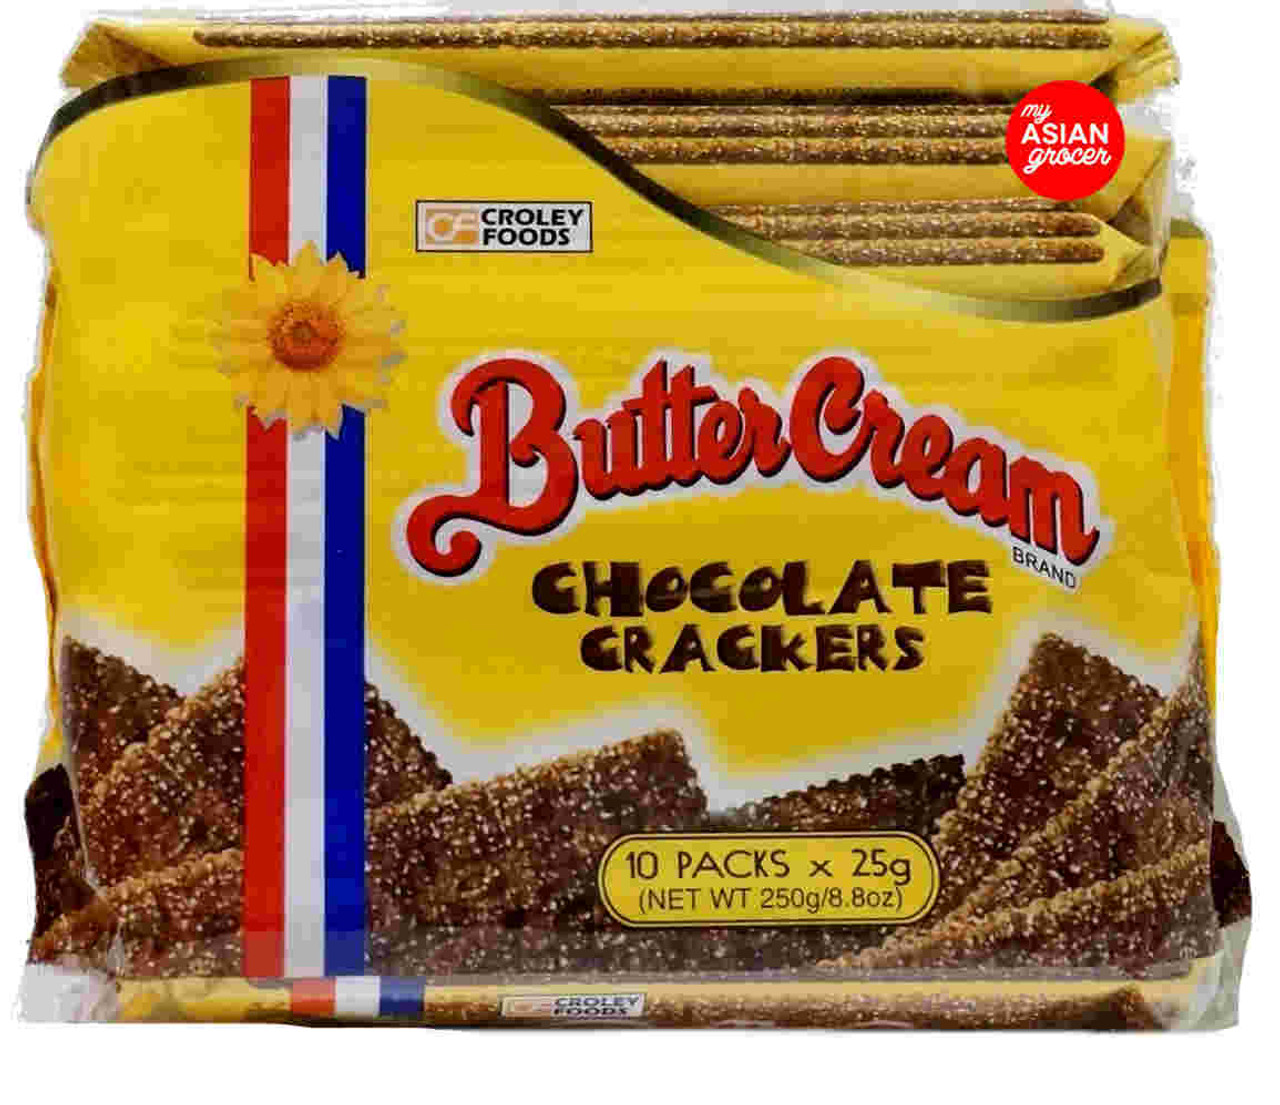 Croley Foods Butter Cream Chocolate Crackers 10 Packs x 25g